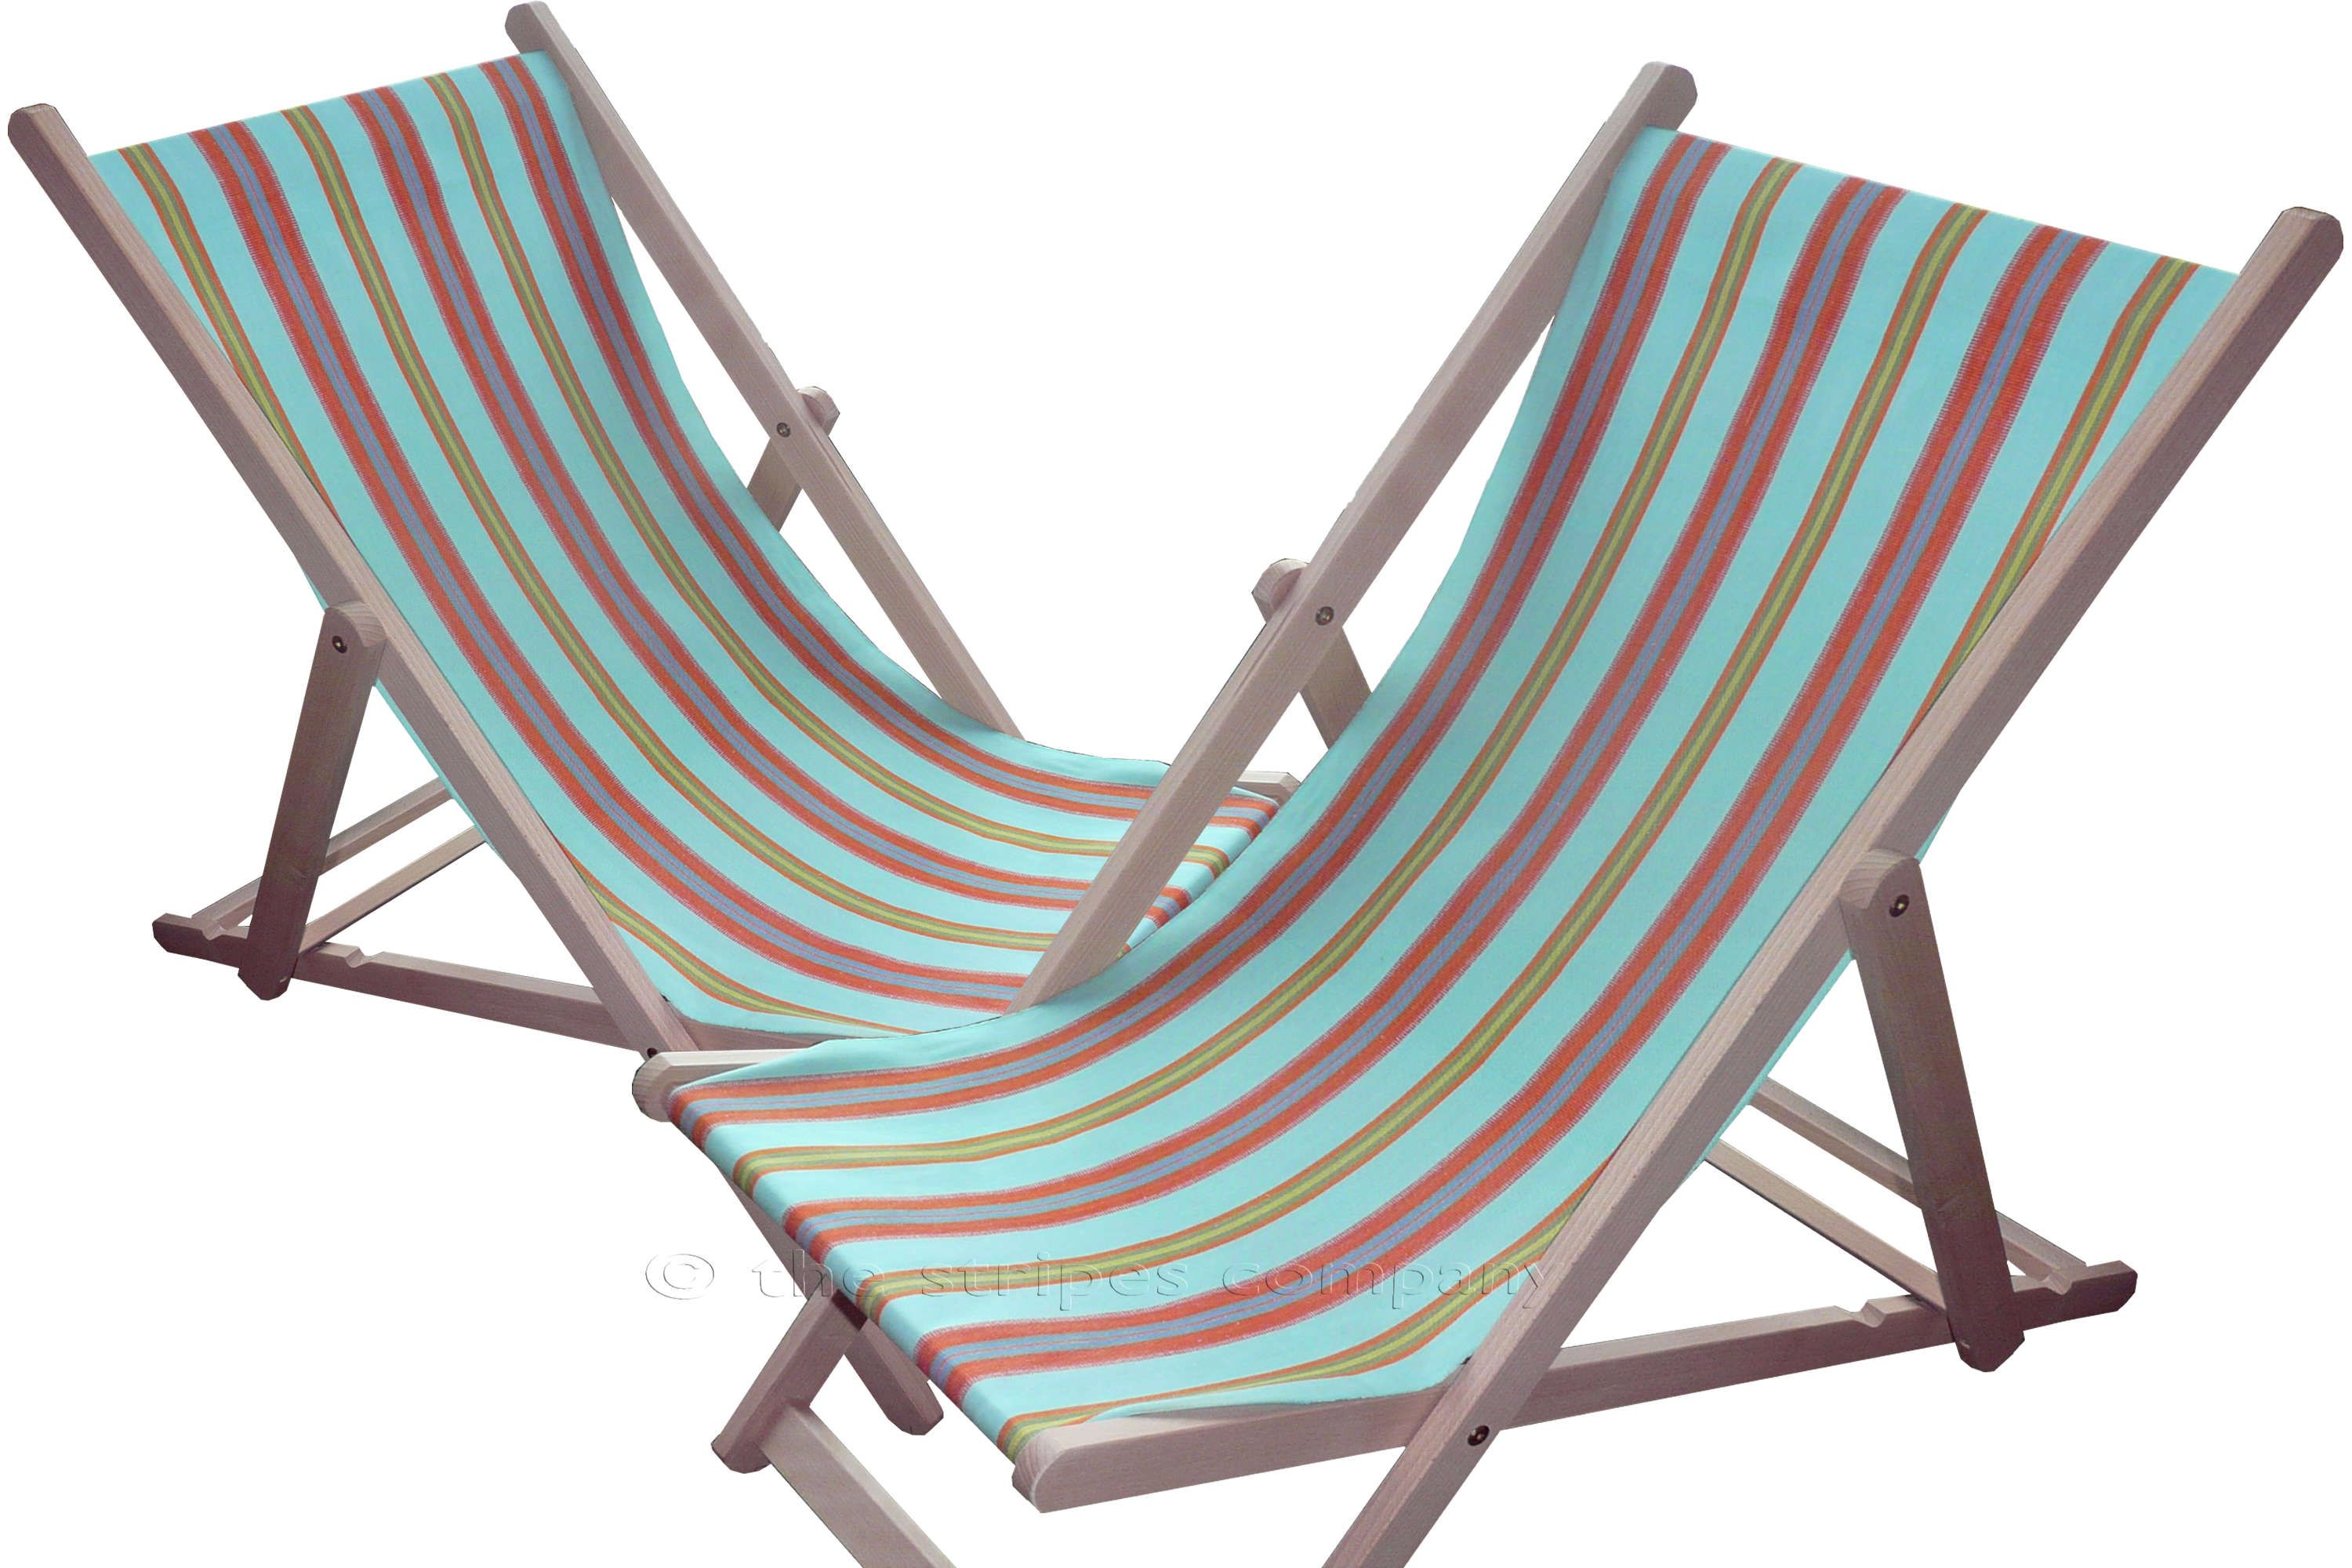 Turquoise Deckchairs | Wooden Folding Deck Chairs - Petanque Stripes